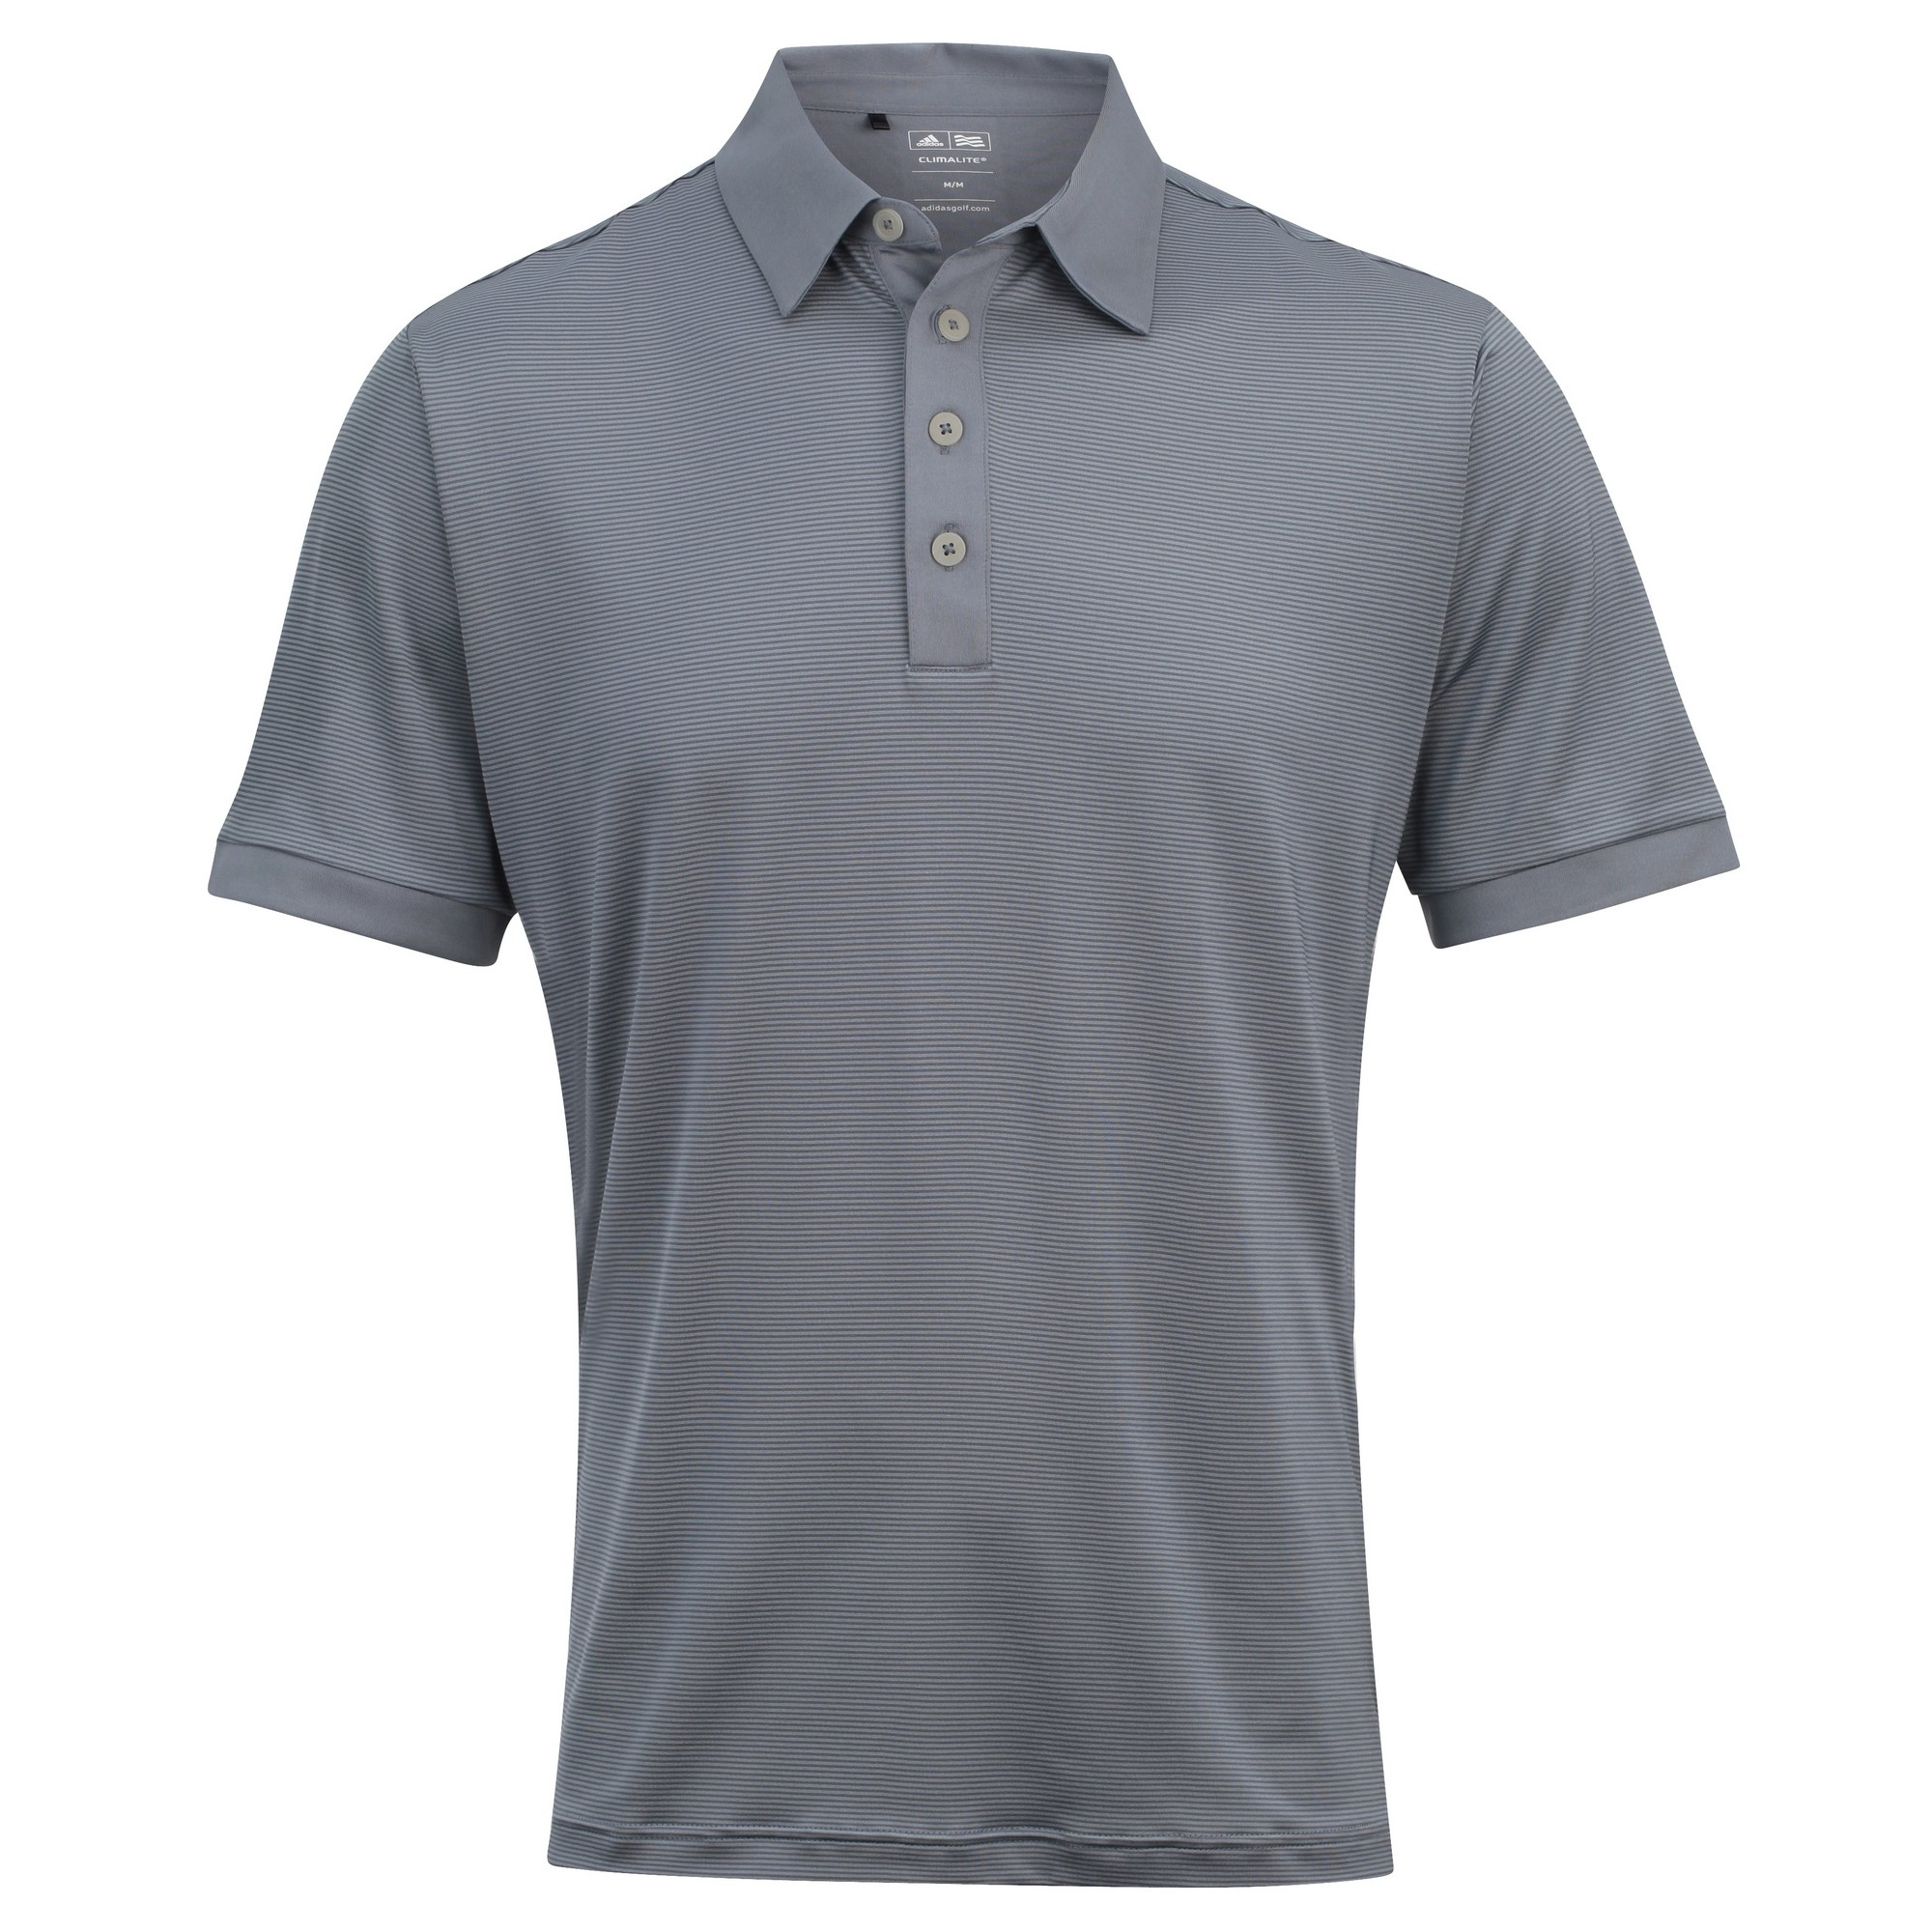 Adidas mens climalite 150 short sleeve plain sports polo for Best mens sport shirts